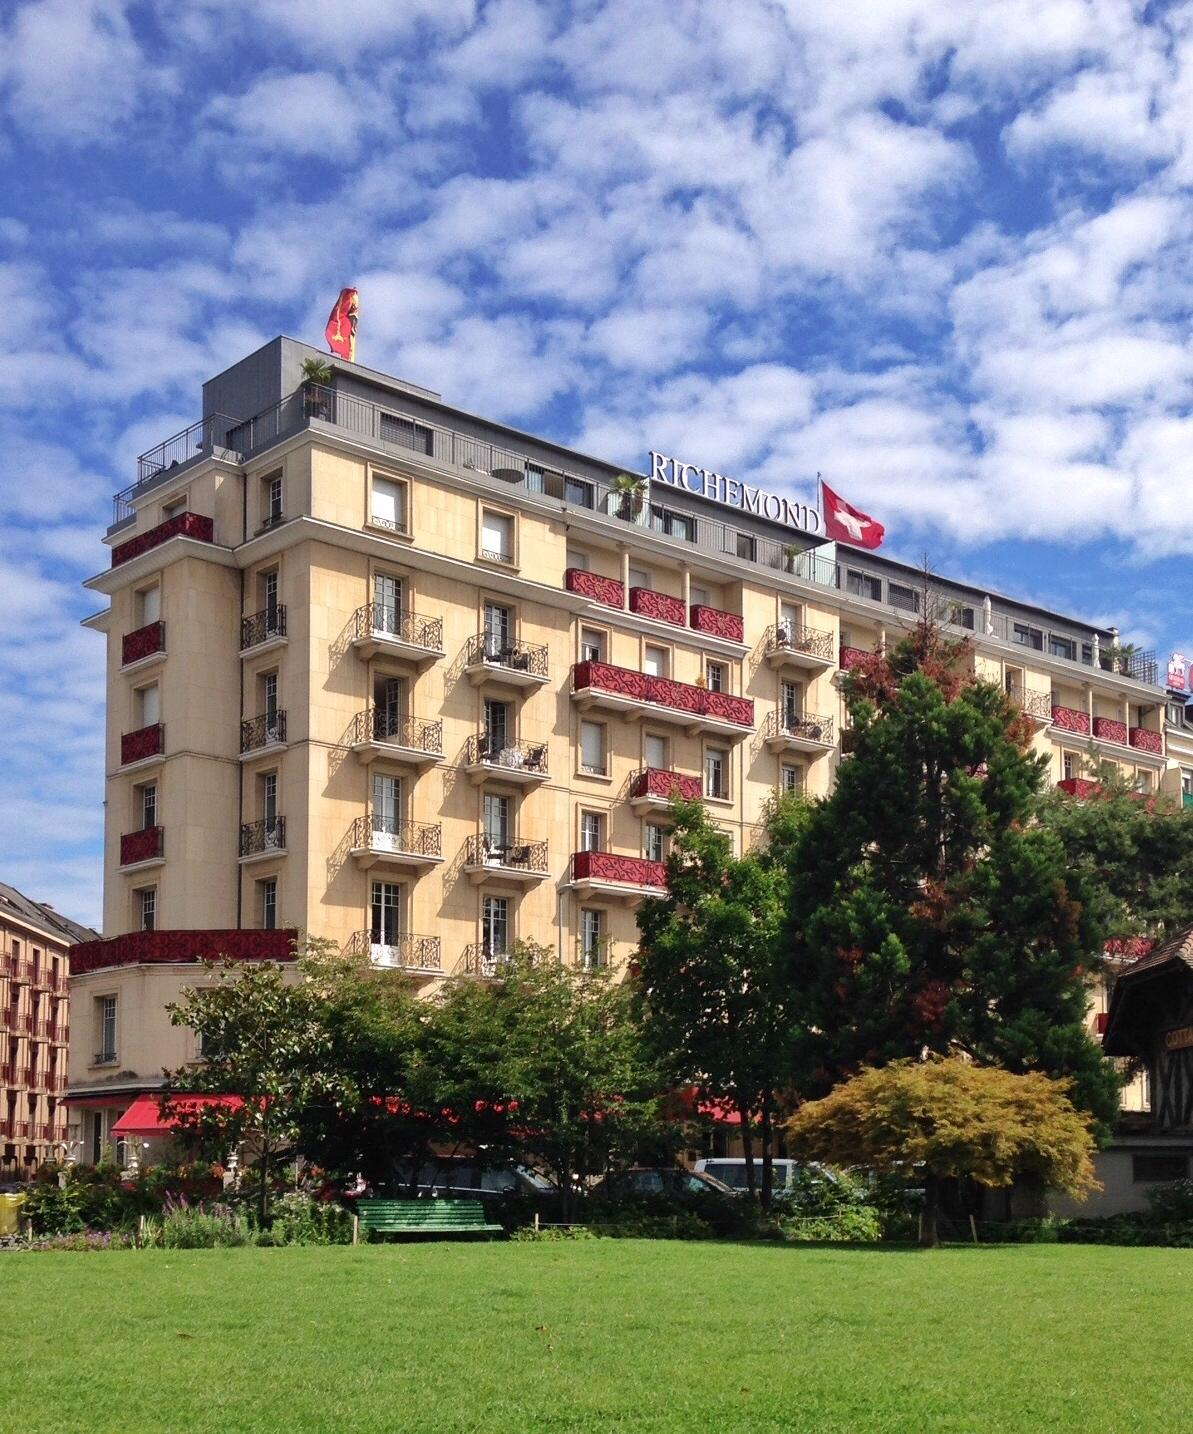 Le Richemond | Carefree Vacations